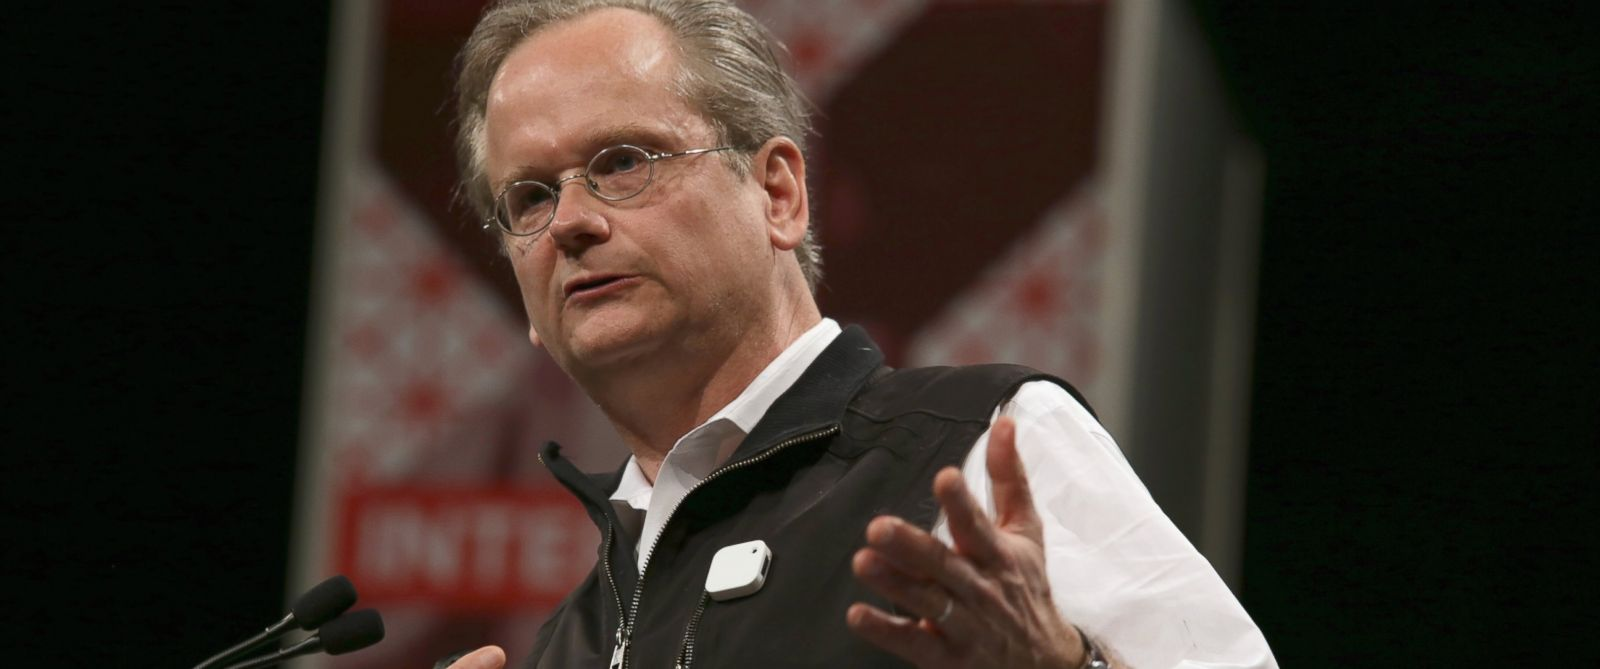 PHOTO: Lawrence Lessig, director of the Edmond J. Safra Center for Ethics at Harvard University, speaks onstage during the 2015 SXSW Music, Film + Interactive Festival, March 14, 2015 in Austin, Texas.